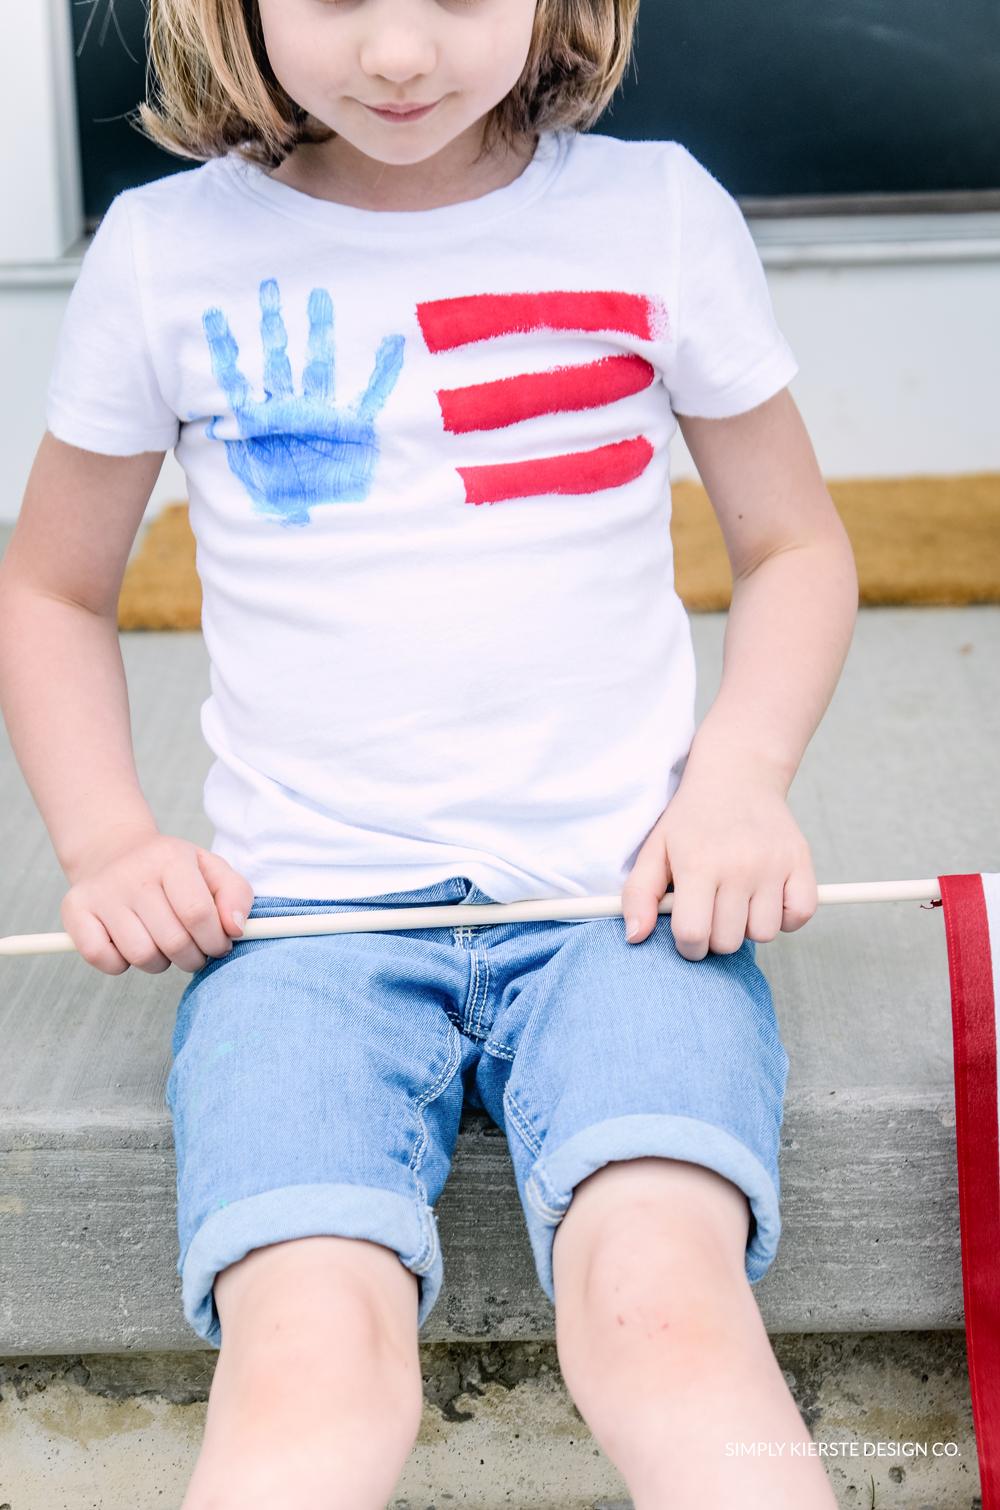 4th of July Handprint Flag Tee | simply kierste.com